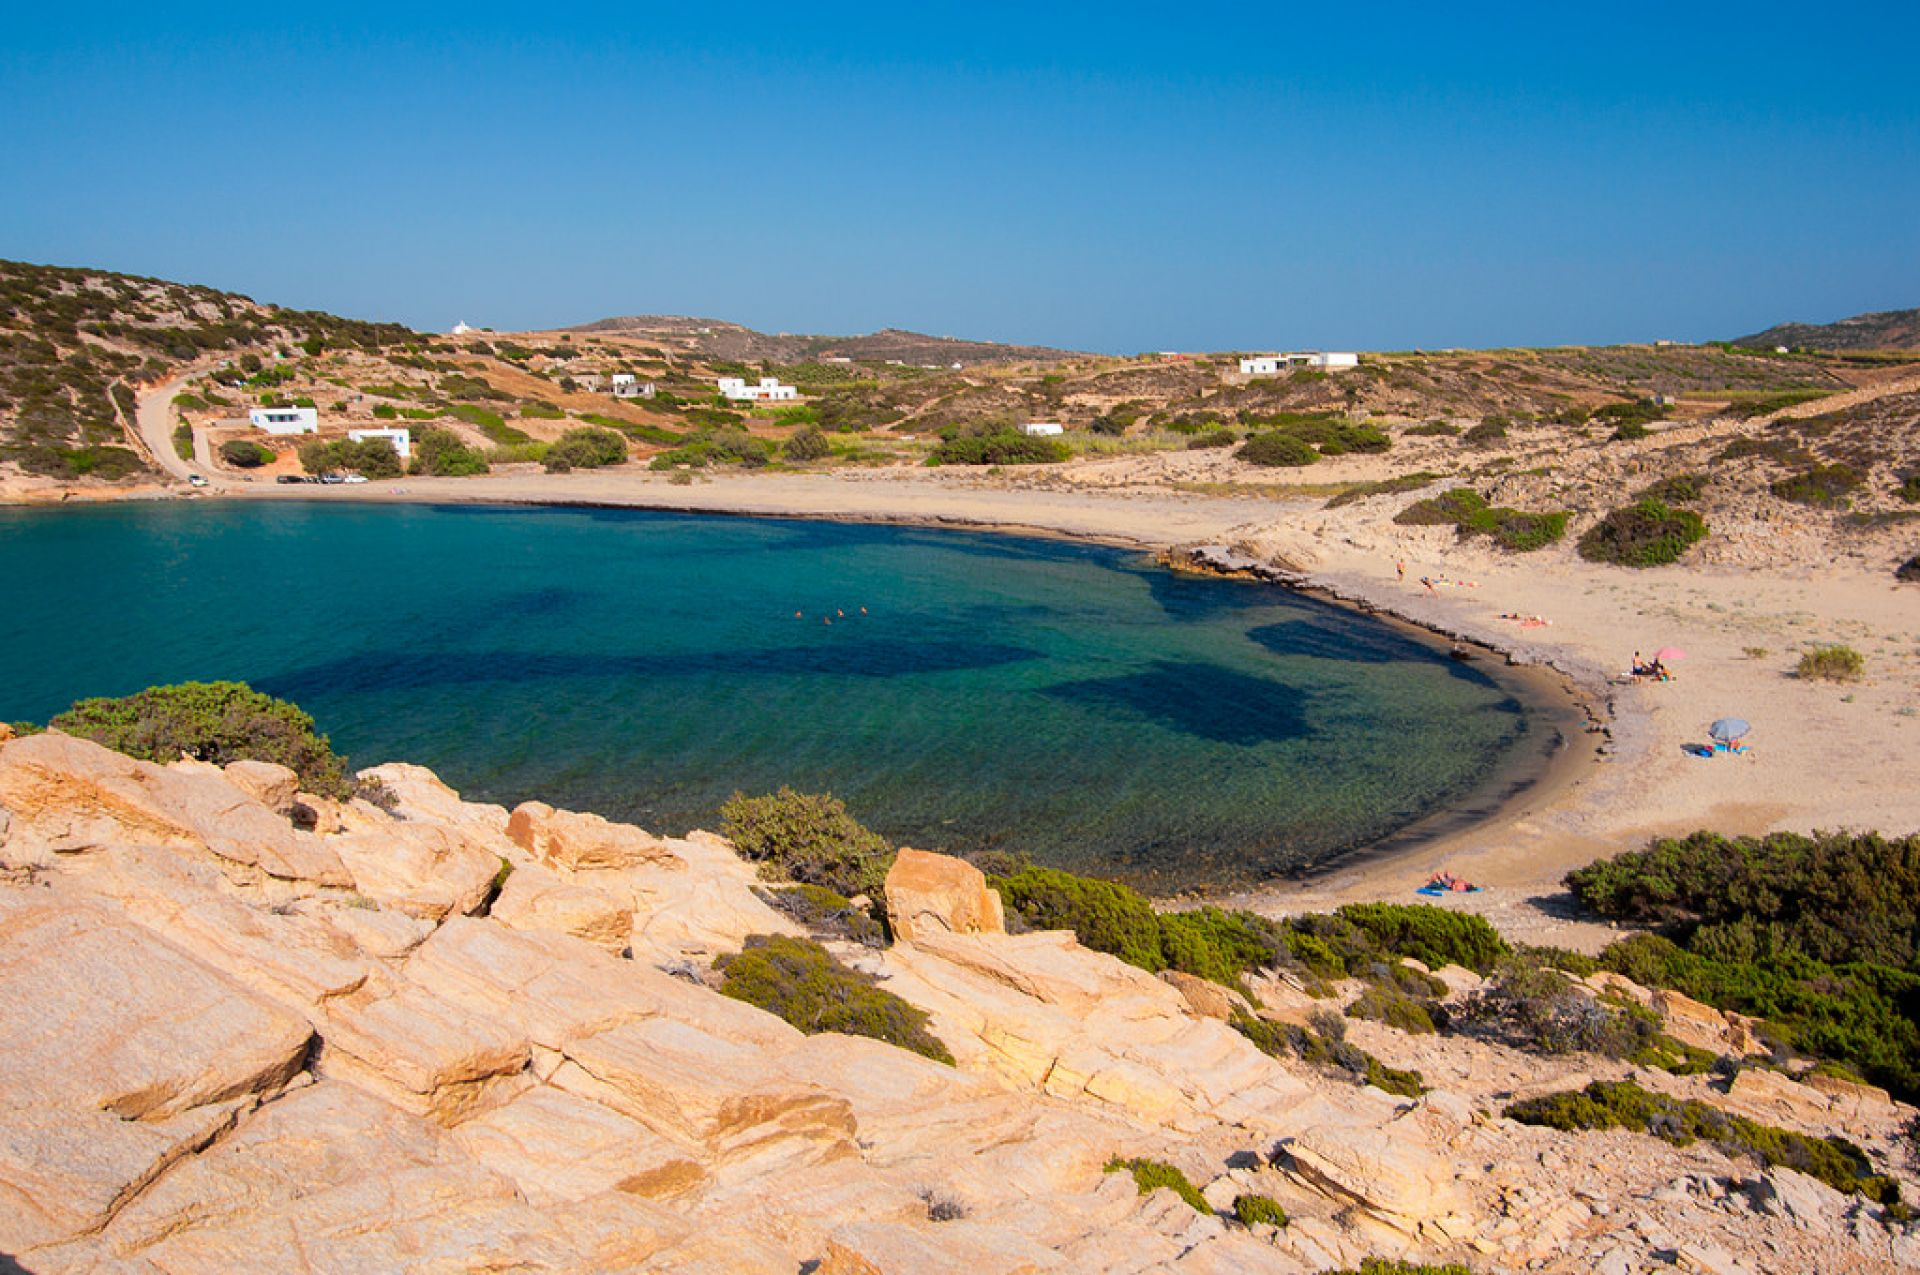 Antiparos Beaches: Beautiful and ready to be discovered - Part 2